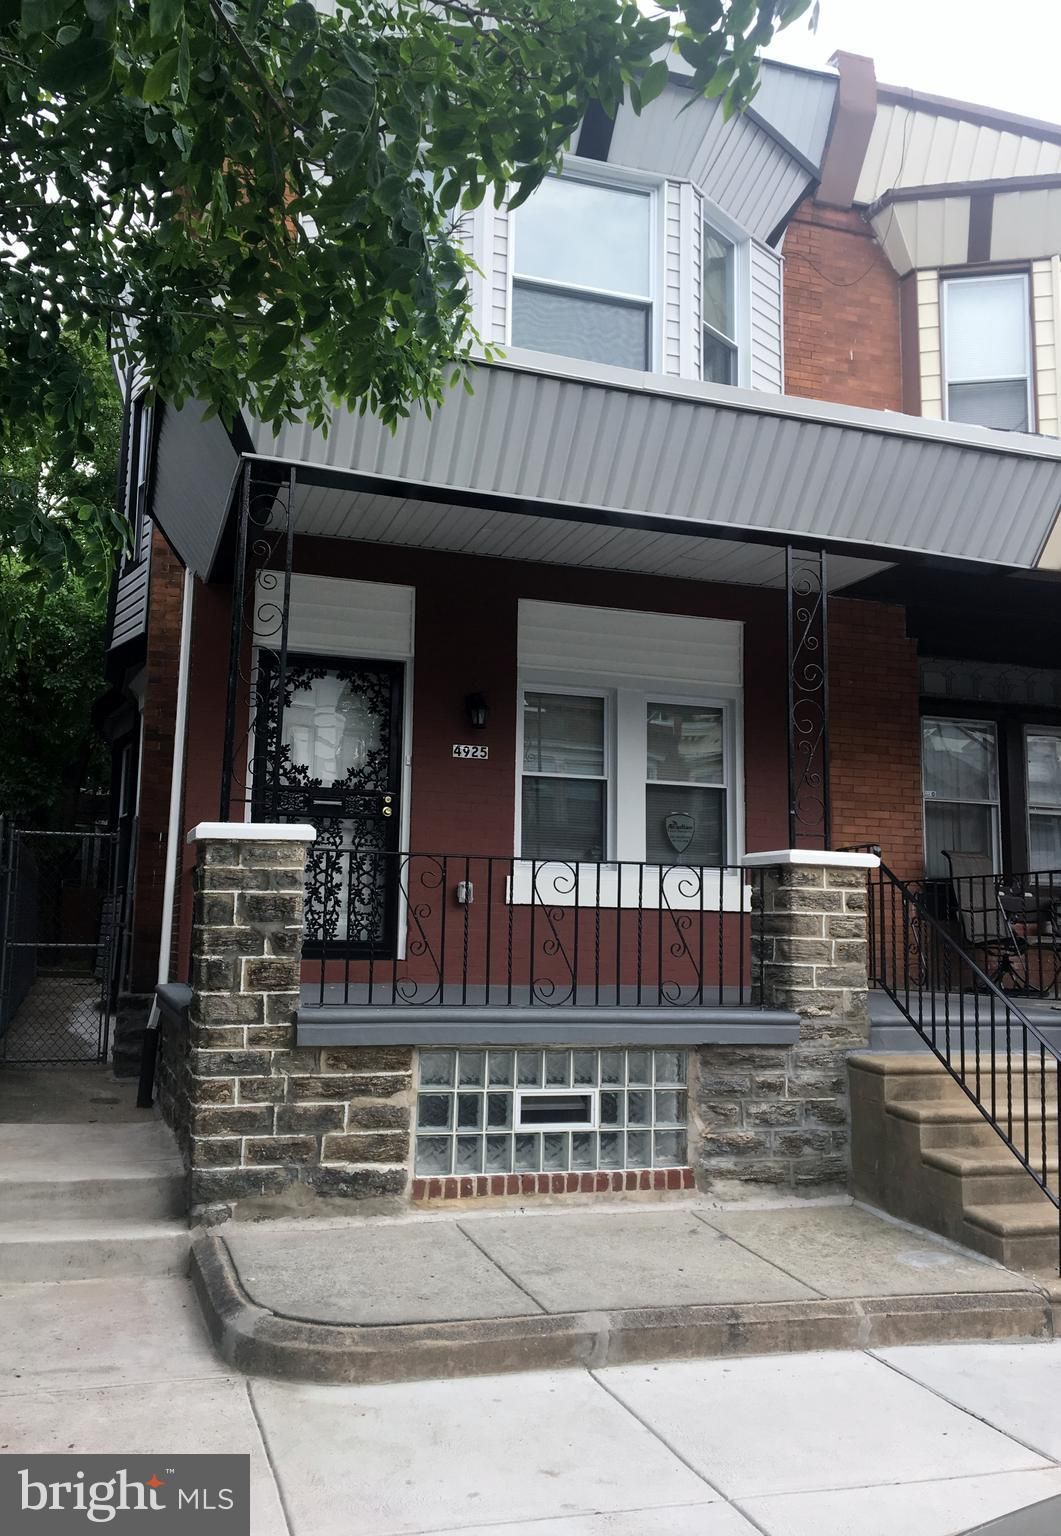 4925 N 11TH ST, PHILADELPHIA, PA 19141